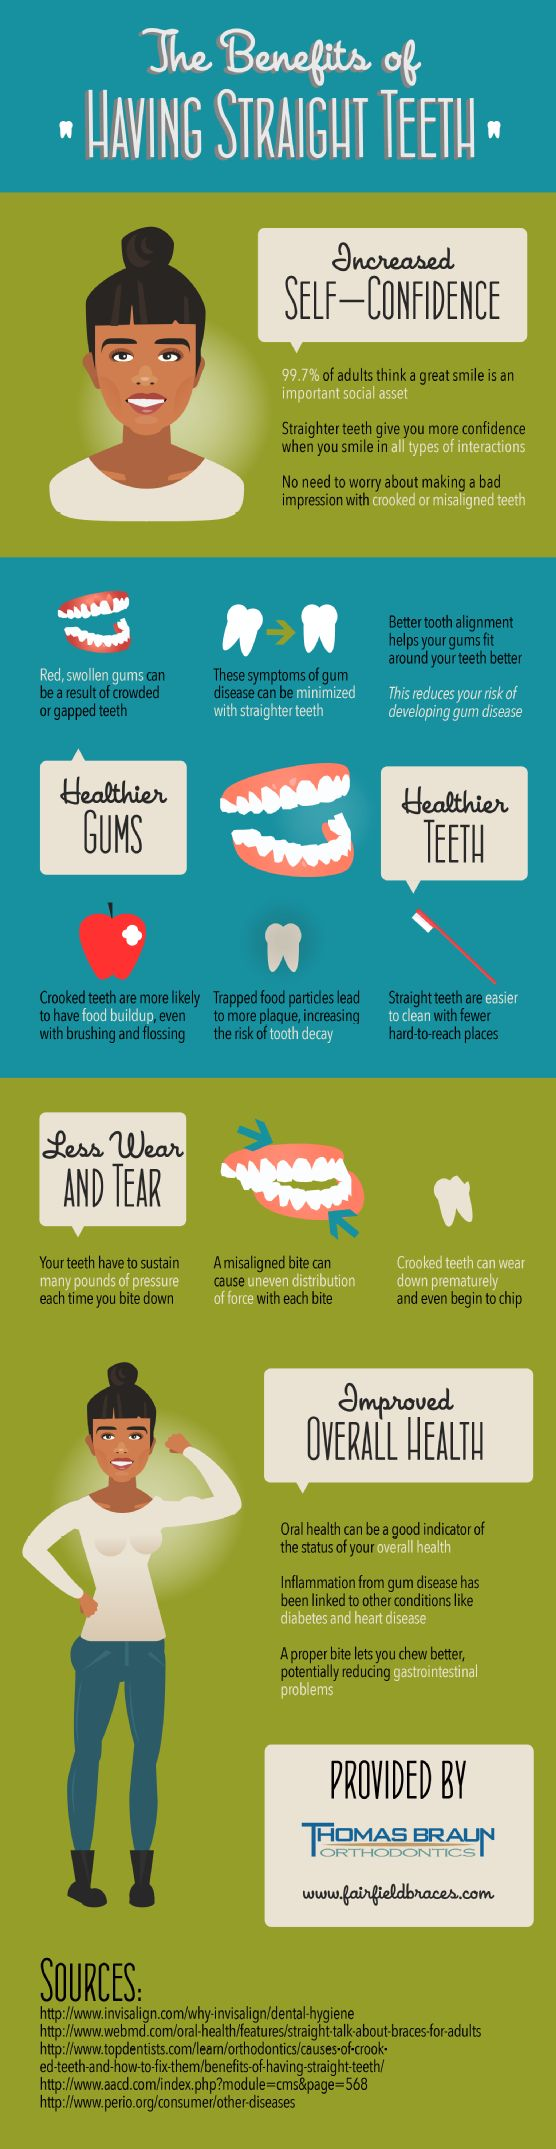 The benefits of straight teeth.  [infographic]  http://dailyinfographic.com/wp-content/uploads/2013/12/the-benefits-of-having-straight-teeth_52a751ab0fd22.png